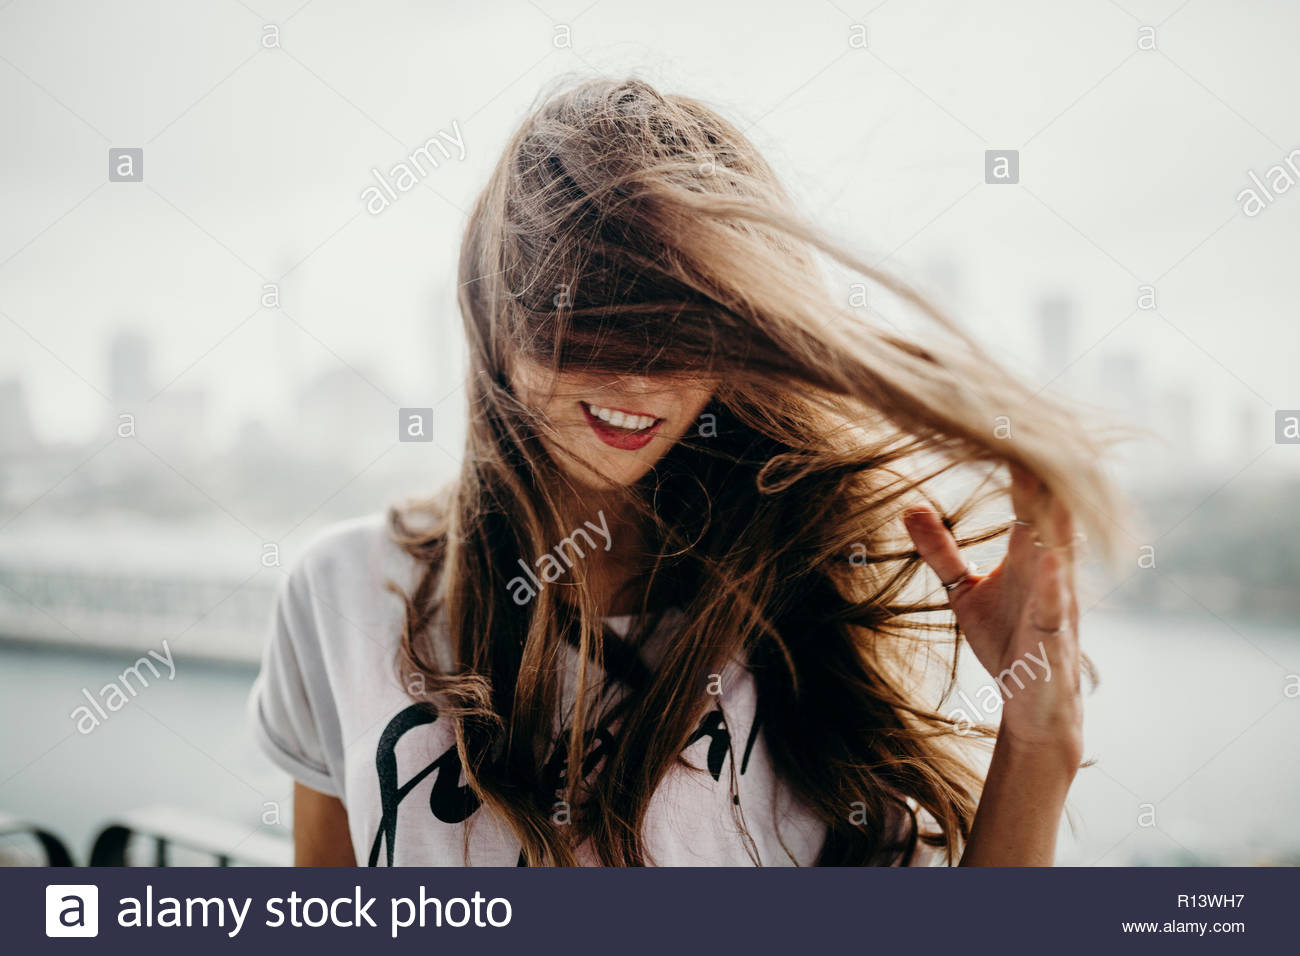 A brunette woman with windswept hair - Stock Image